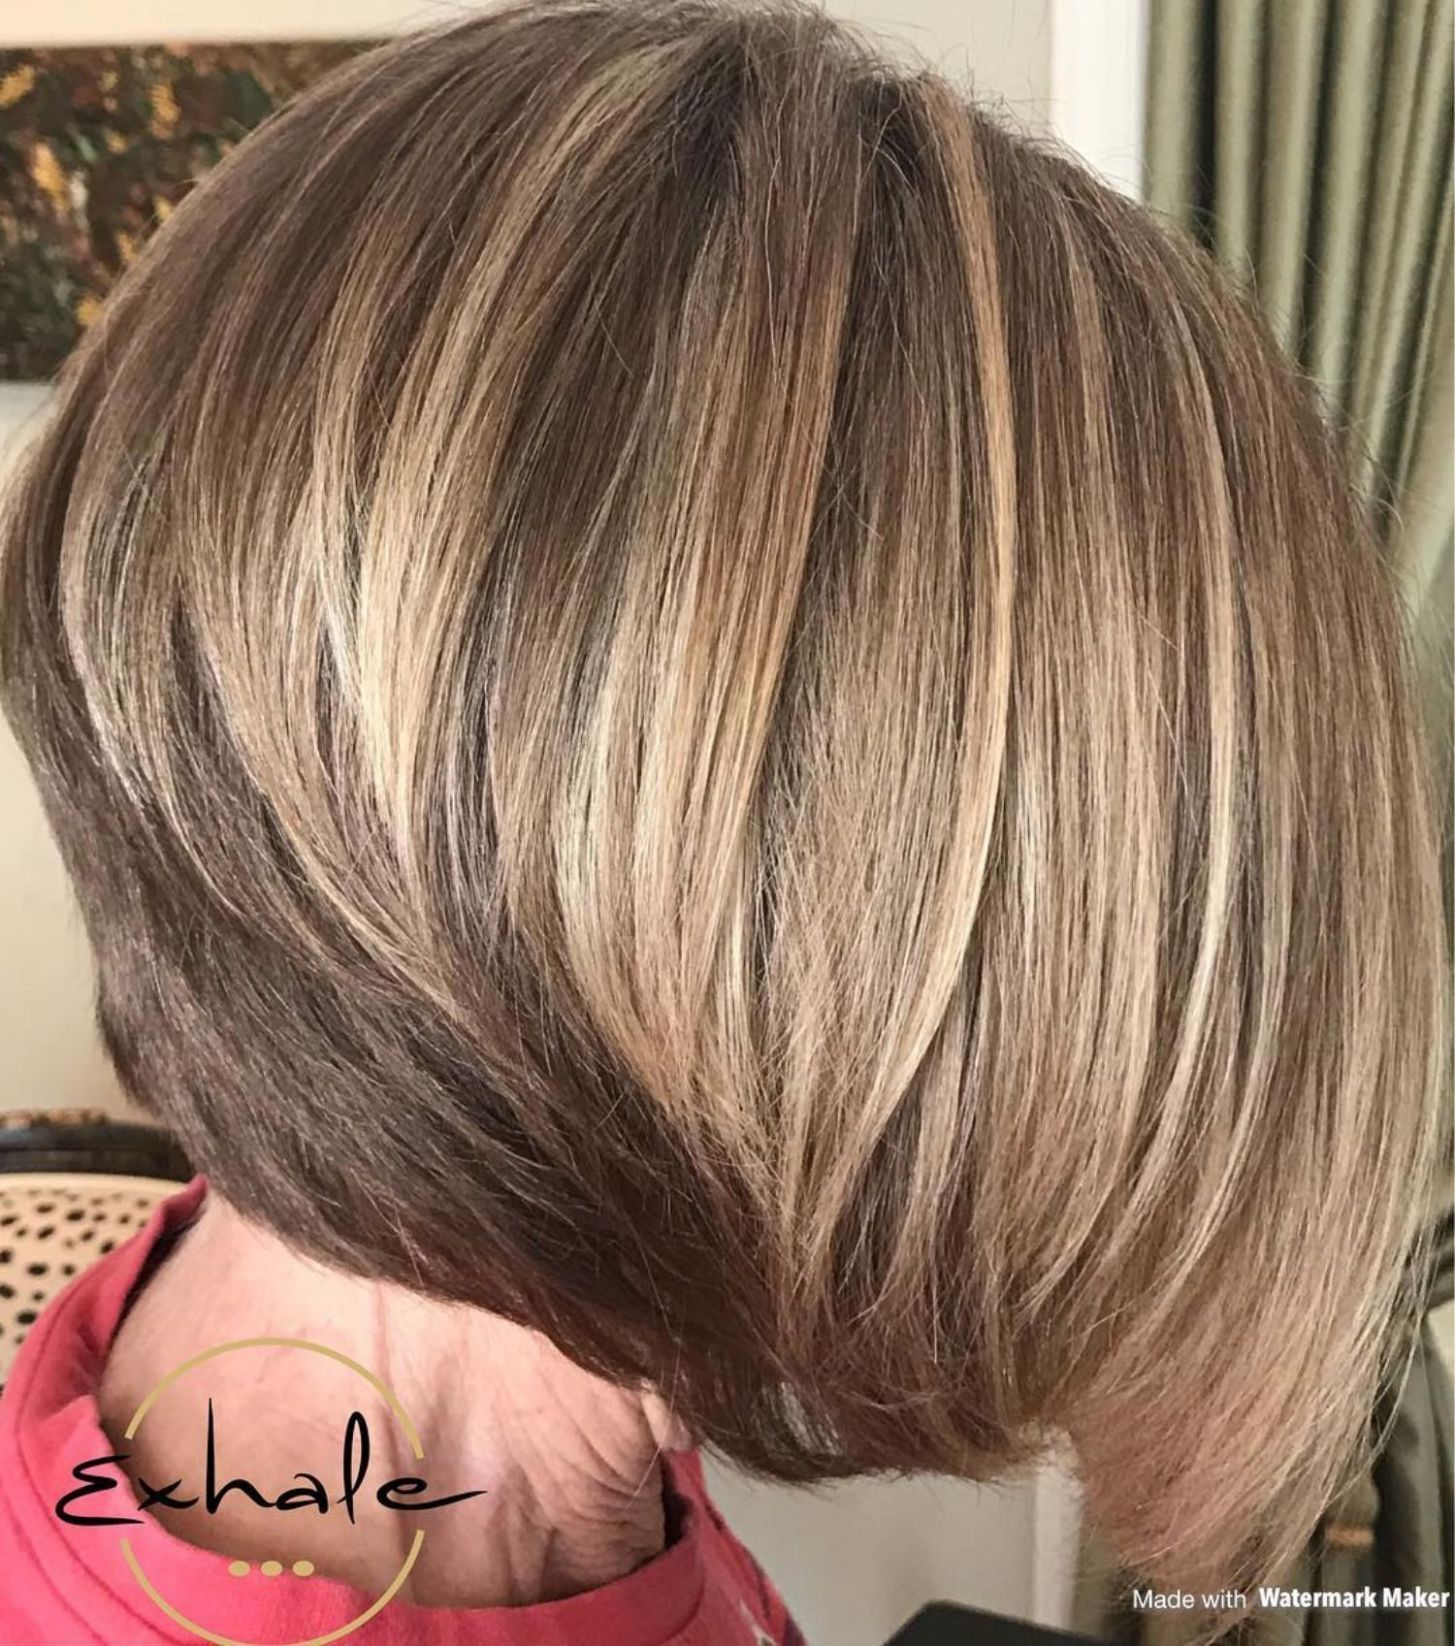 The Best Hairstyles And Haircuts For Women Over 70 Thick Hair Styles Bob Hairstyles For Thick Bobs For Thin Hair